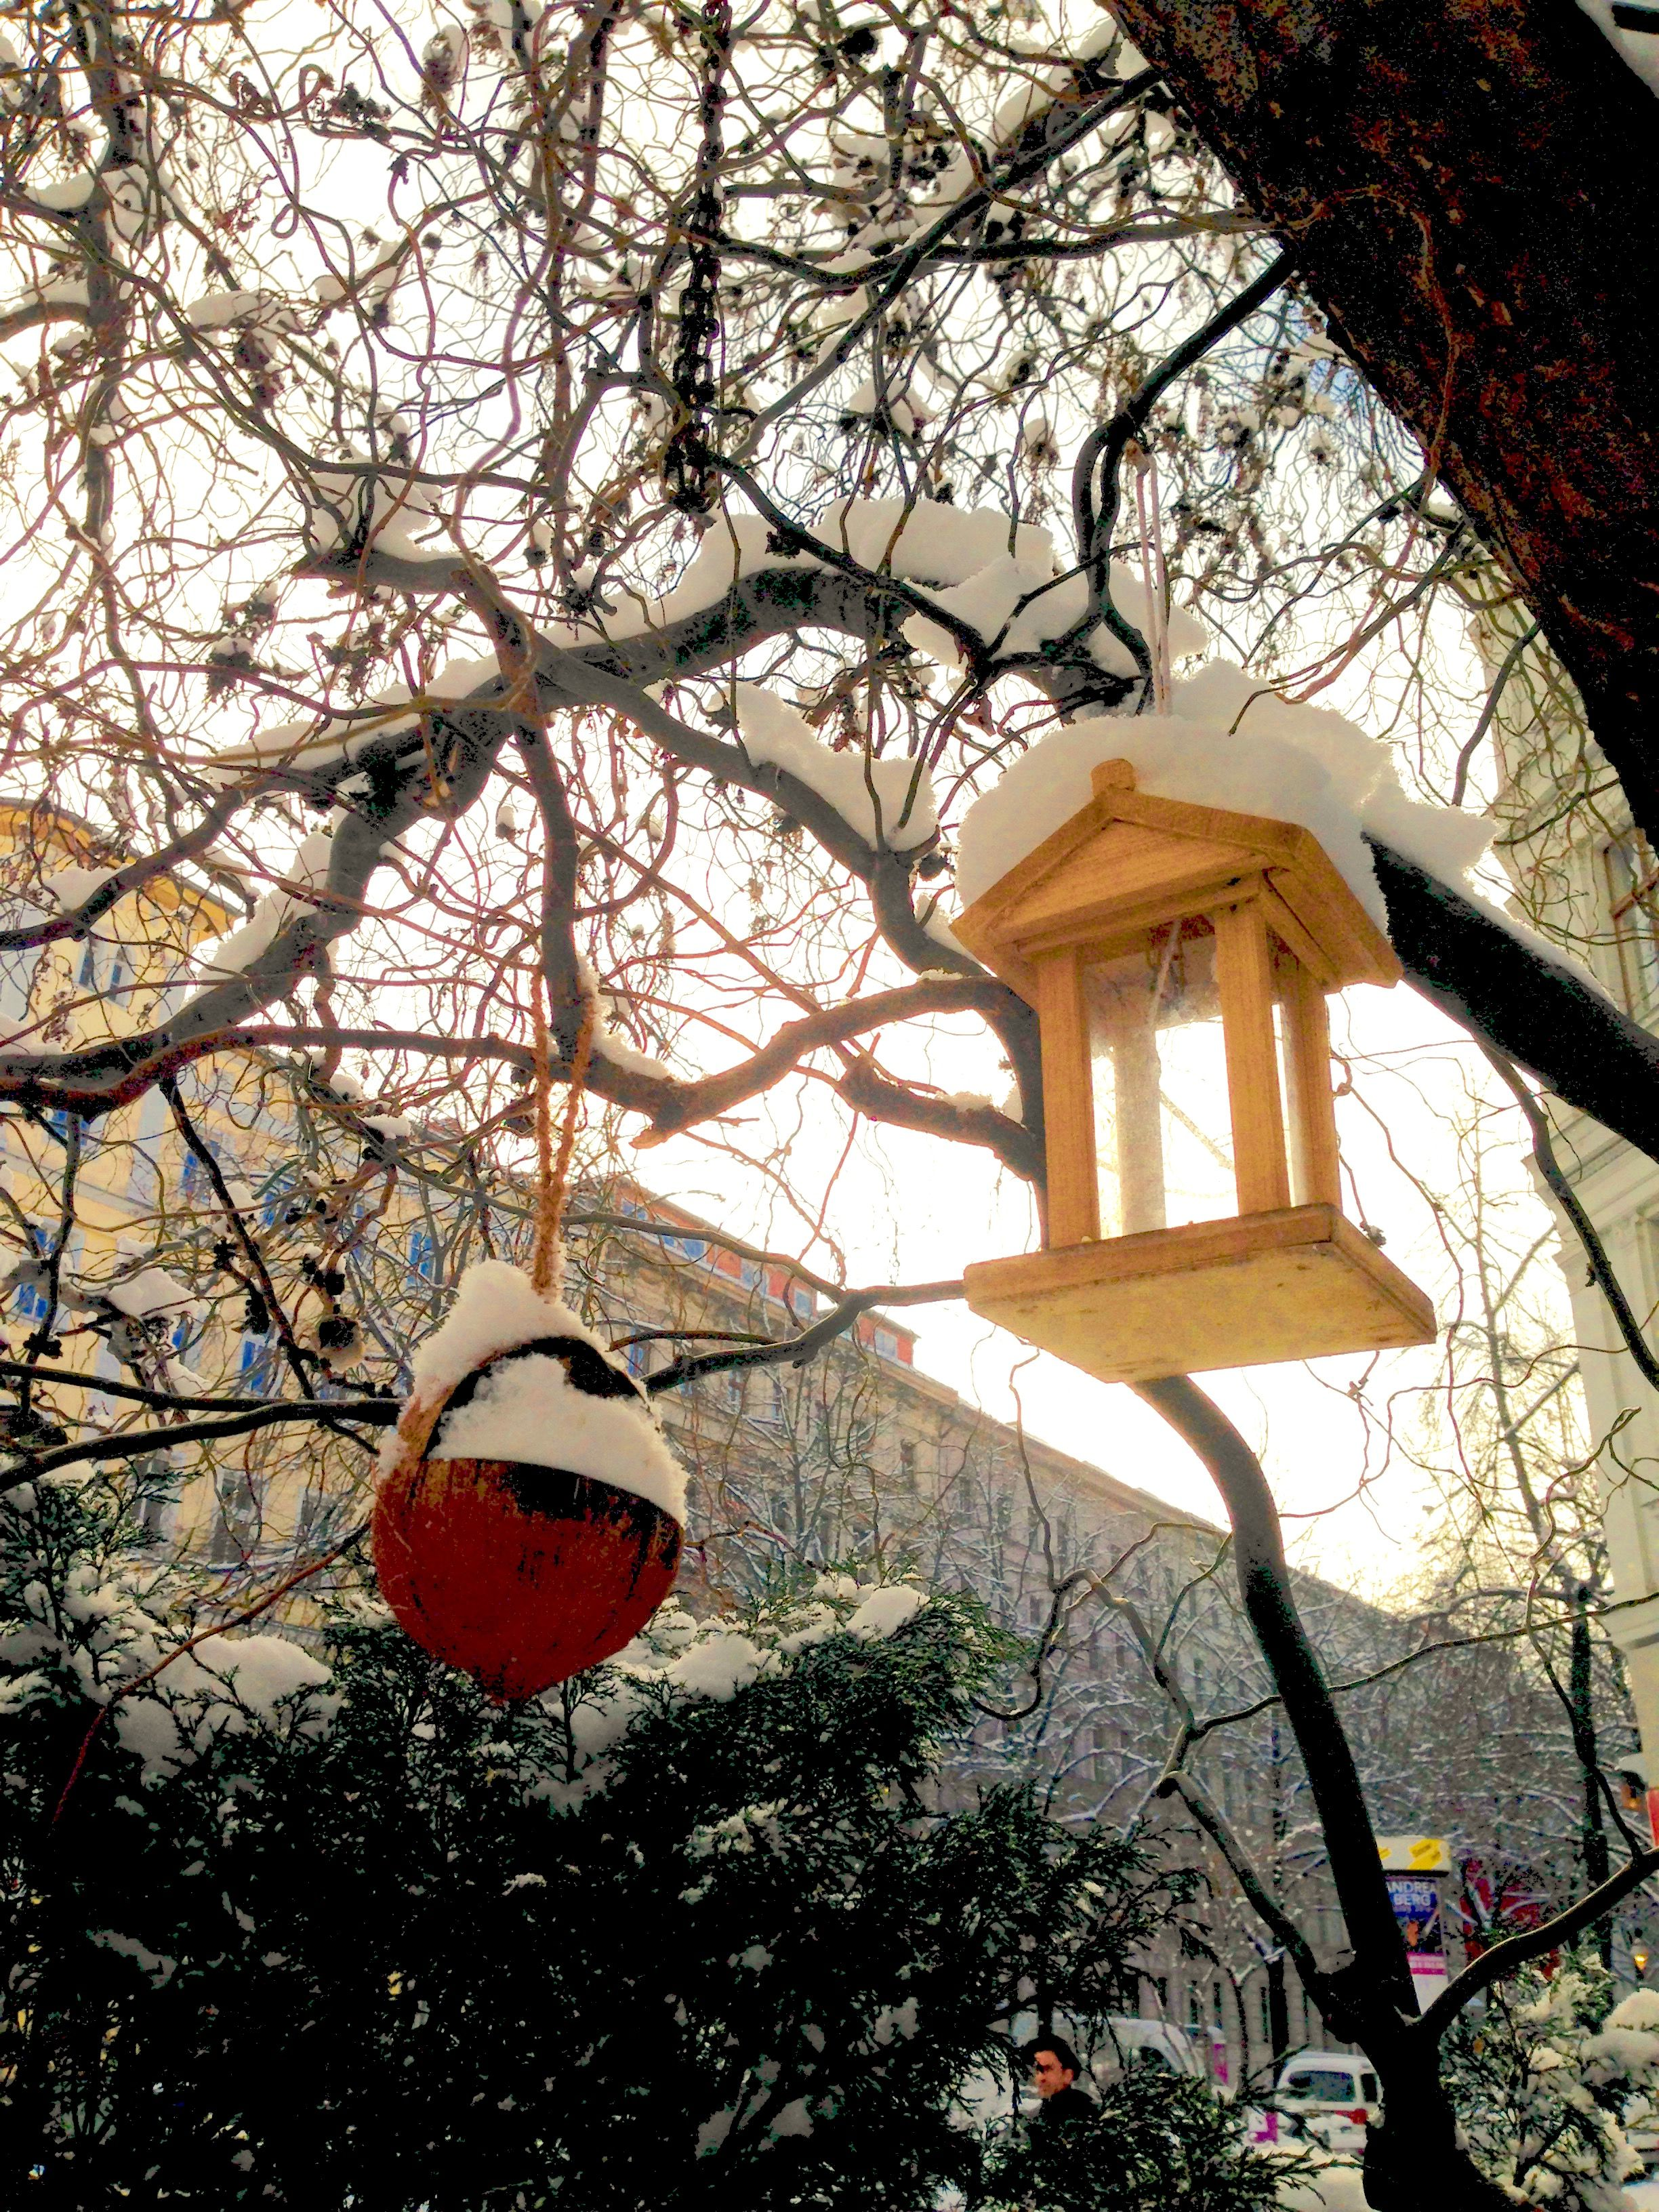 Ornament and birdhouse enjoying the sun after a night of snow